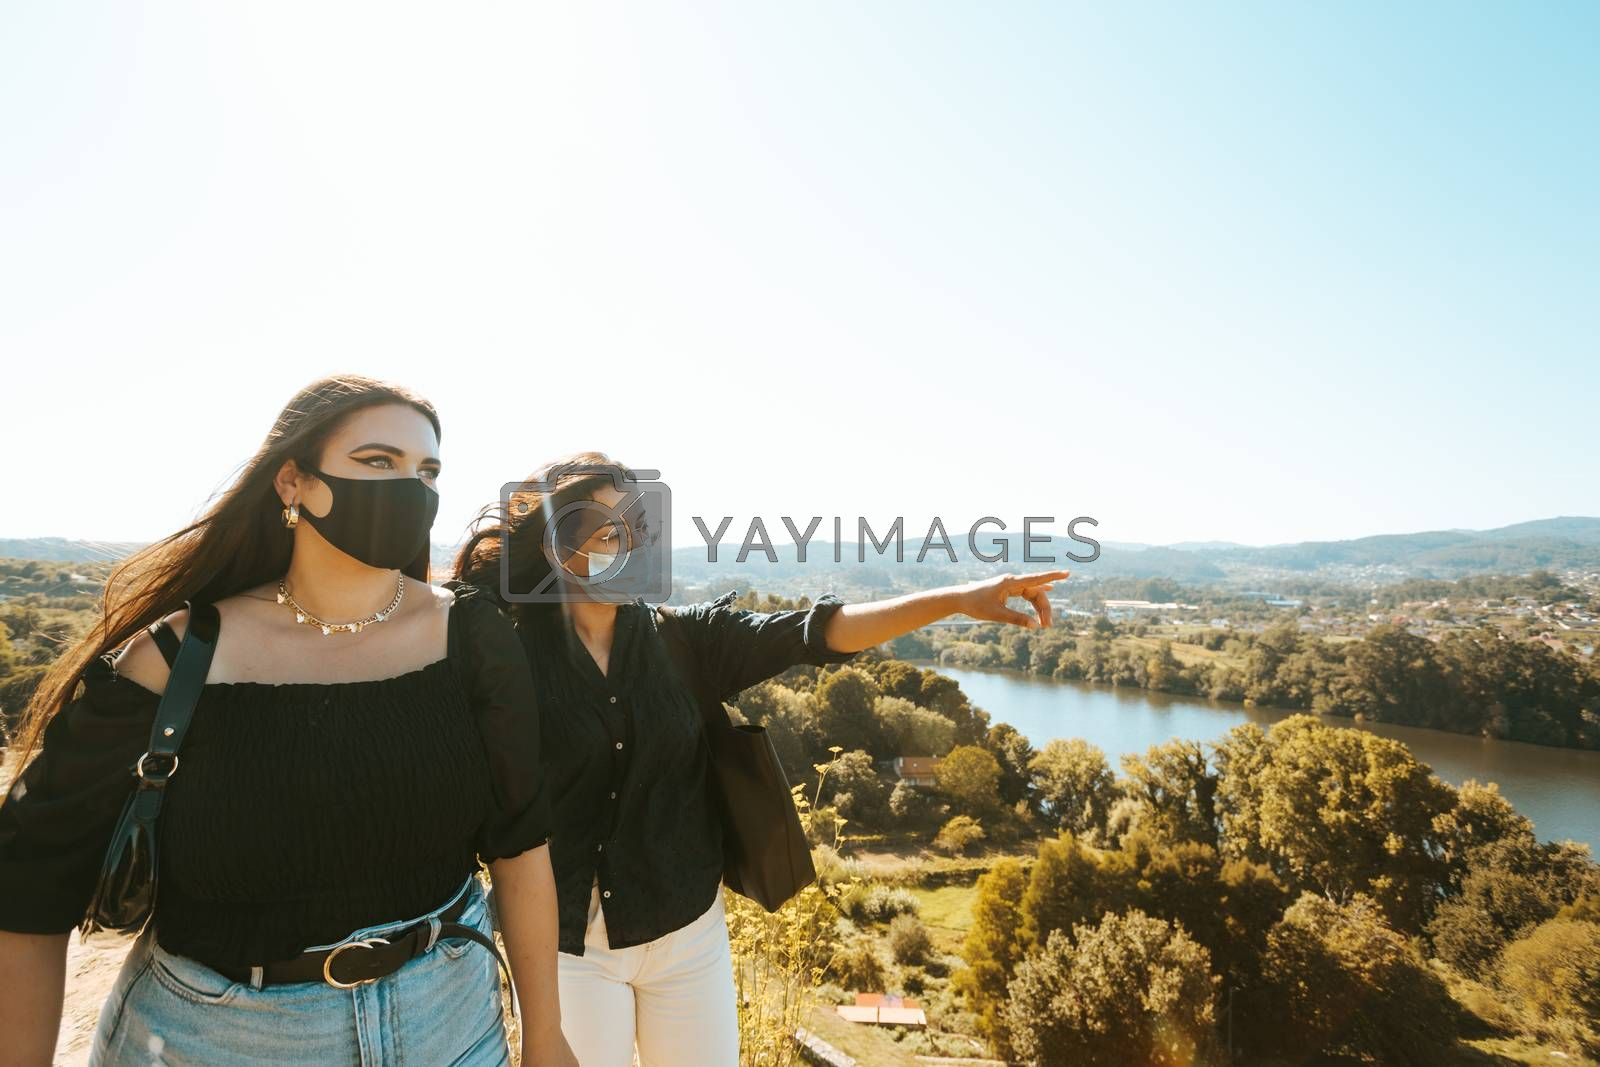 One woman explains another woman the landscape while they both use masks on a sunny day